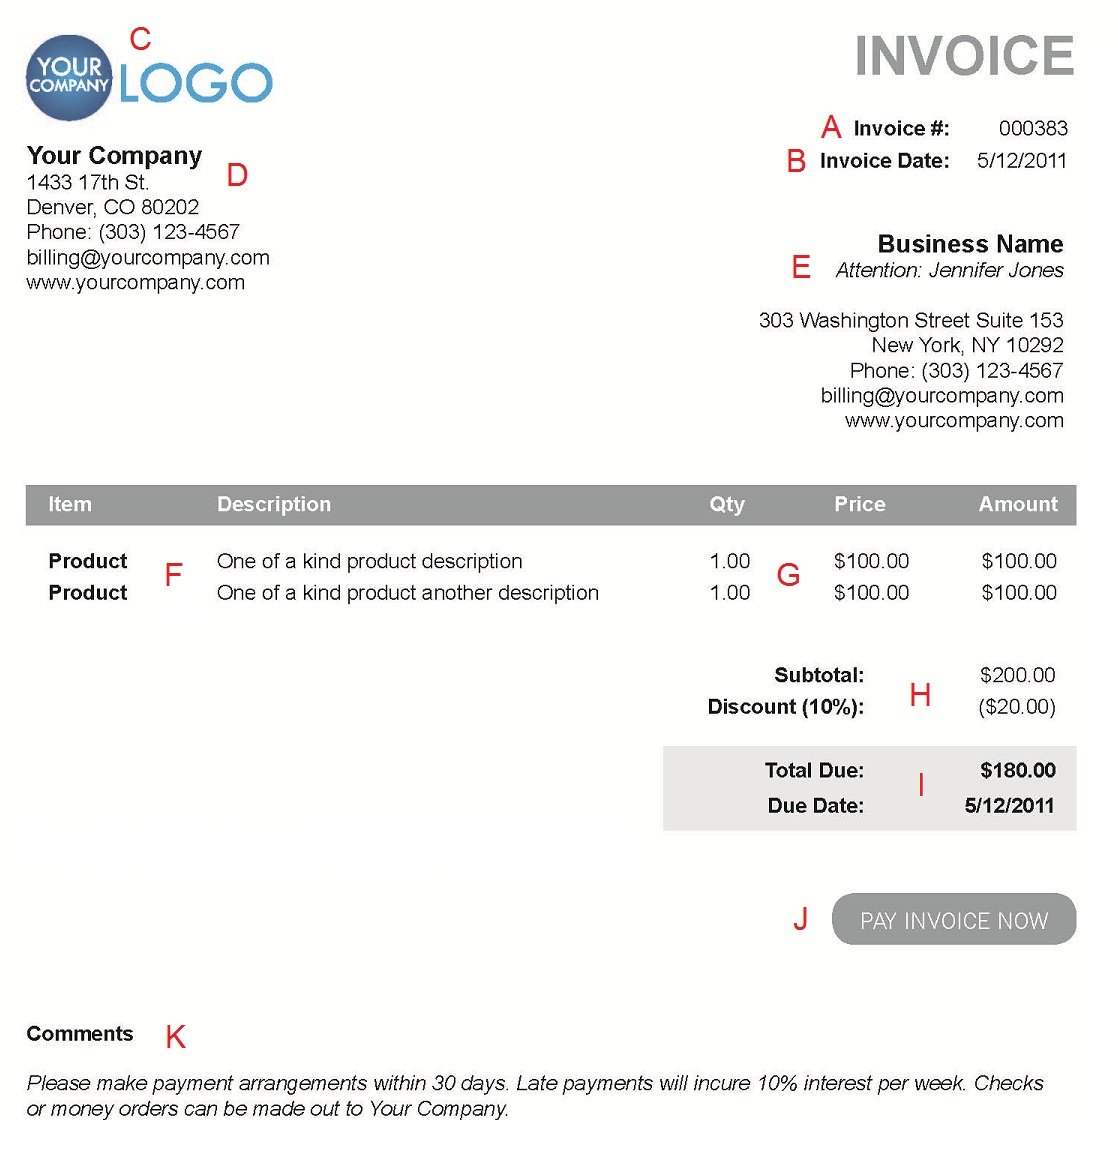 Amatospizzaus  Marvellous The  Different Sections Of An Electronic Payment Invoice With Goodlooking A  With Delightful Receipts For Business Also Irs Scanned Receipts In Addition Charitable Receipt Template And Amazon Neat Receipts As Well As Carrot Cake Receipt Additionally Receipt Scanner Mac From Paysimplecom With Amatospizzaus  Goodlooking The  Different Sections Of An Electronic Payment Invoice With Delightful A  And Marvellous Receipts For Business Also Irs Scanned Receipts In Addition Charitable Receipt Template From Paysimplecom